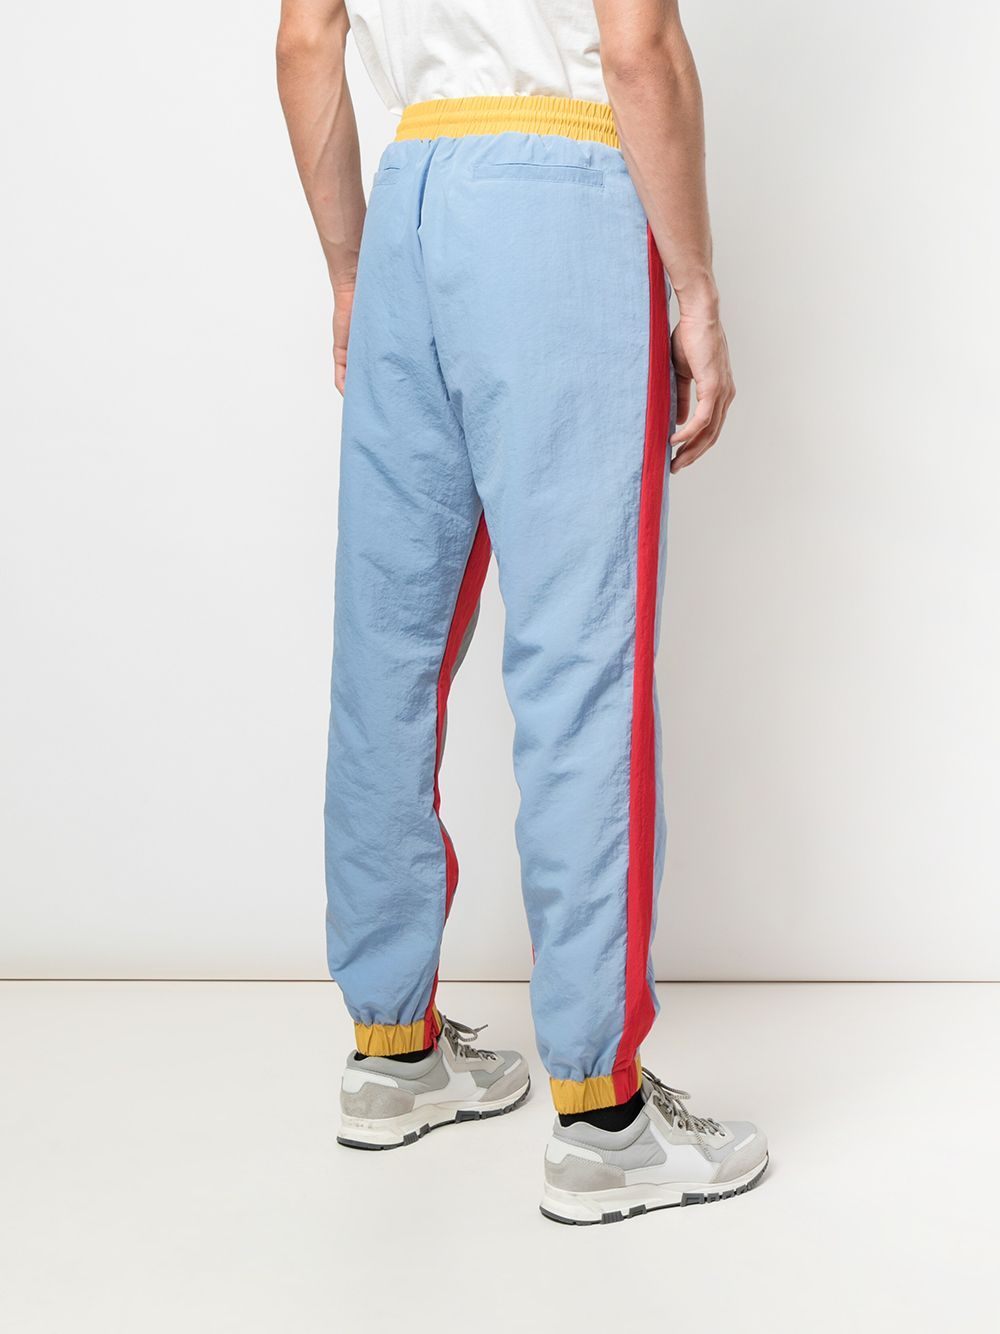 SUPERSTAR WARM UP PANT (LIGHT BLUE/RED)